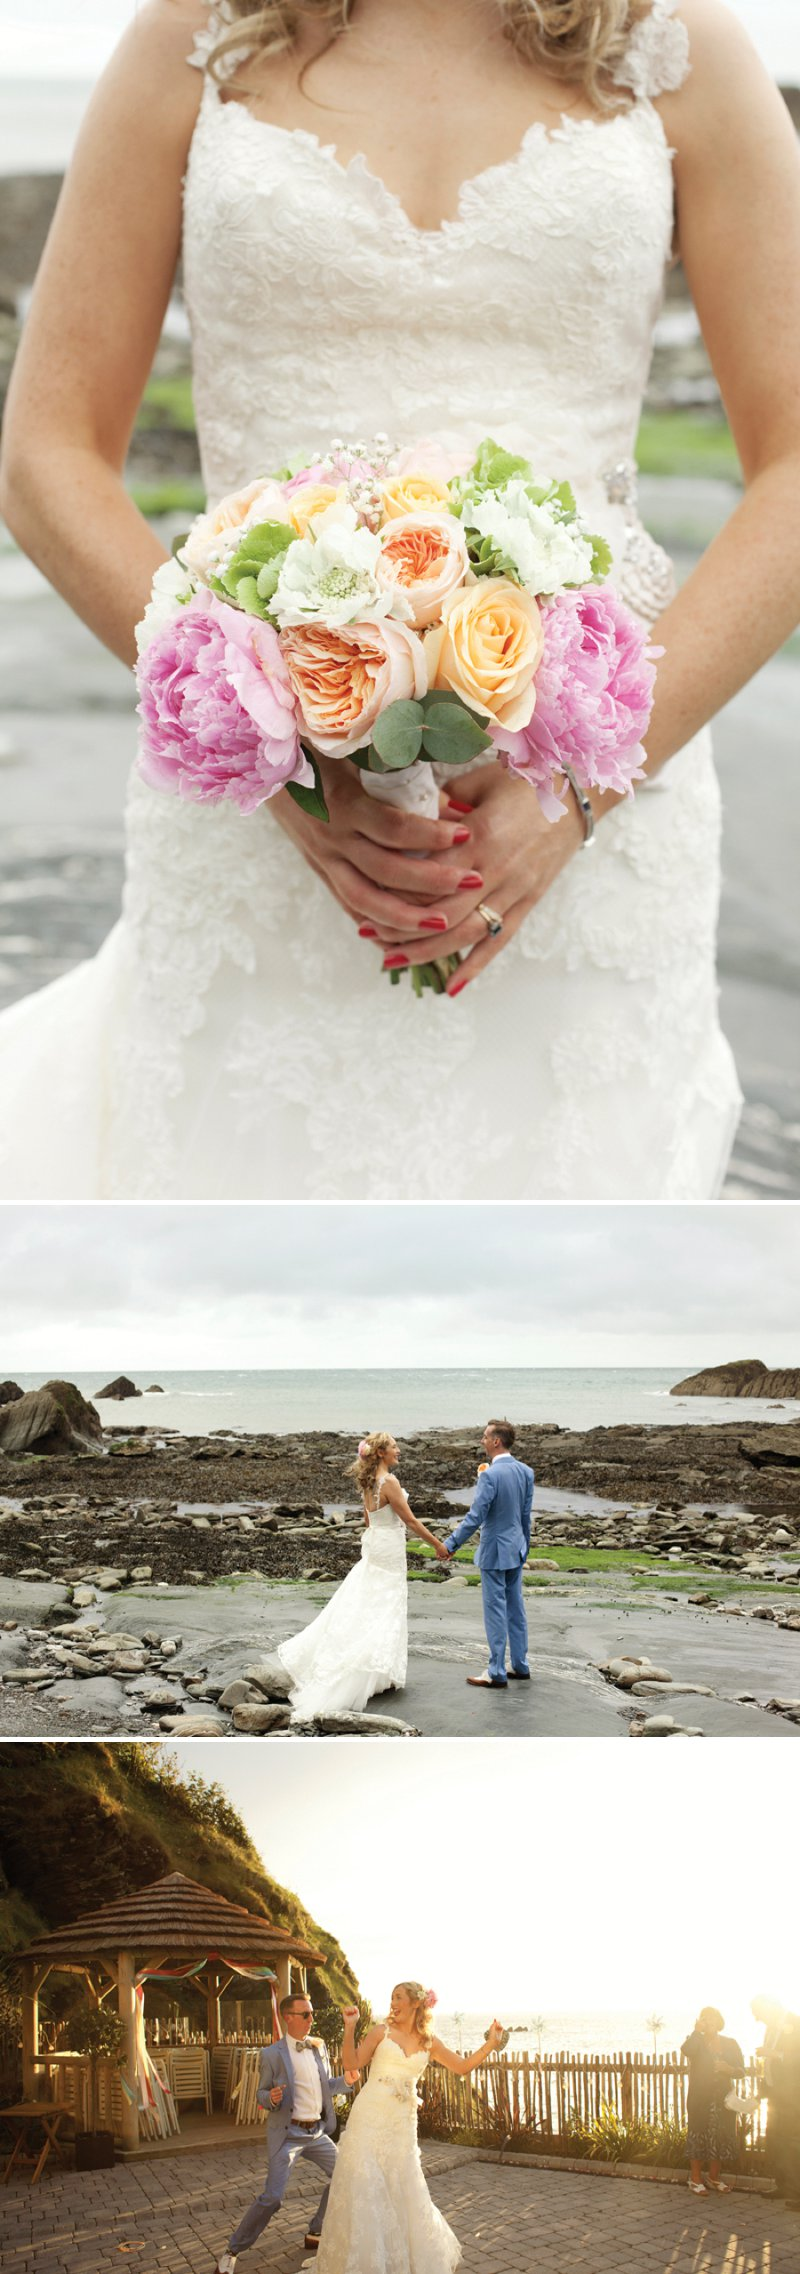 A Fun Filled Wedding At Tunnels Beaches Devon With An Outdoor Ceremony And Bride In Diana By Enzoani With Groom In Light Blue Suit And Bridesmaids In Red Candy Striped Dresses From Jack Wills 1 The Rainbow Connection.